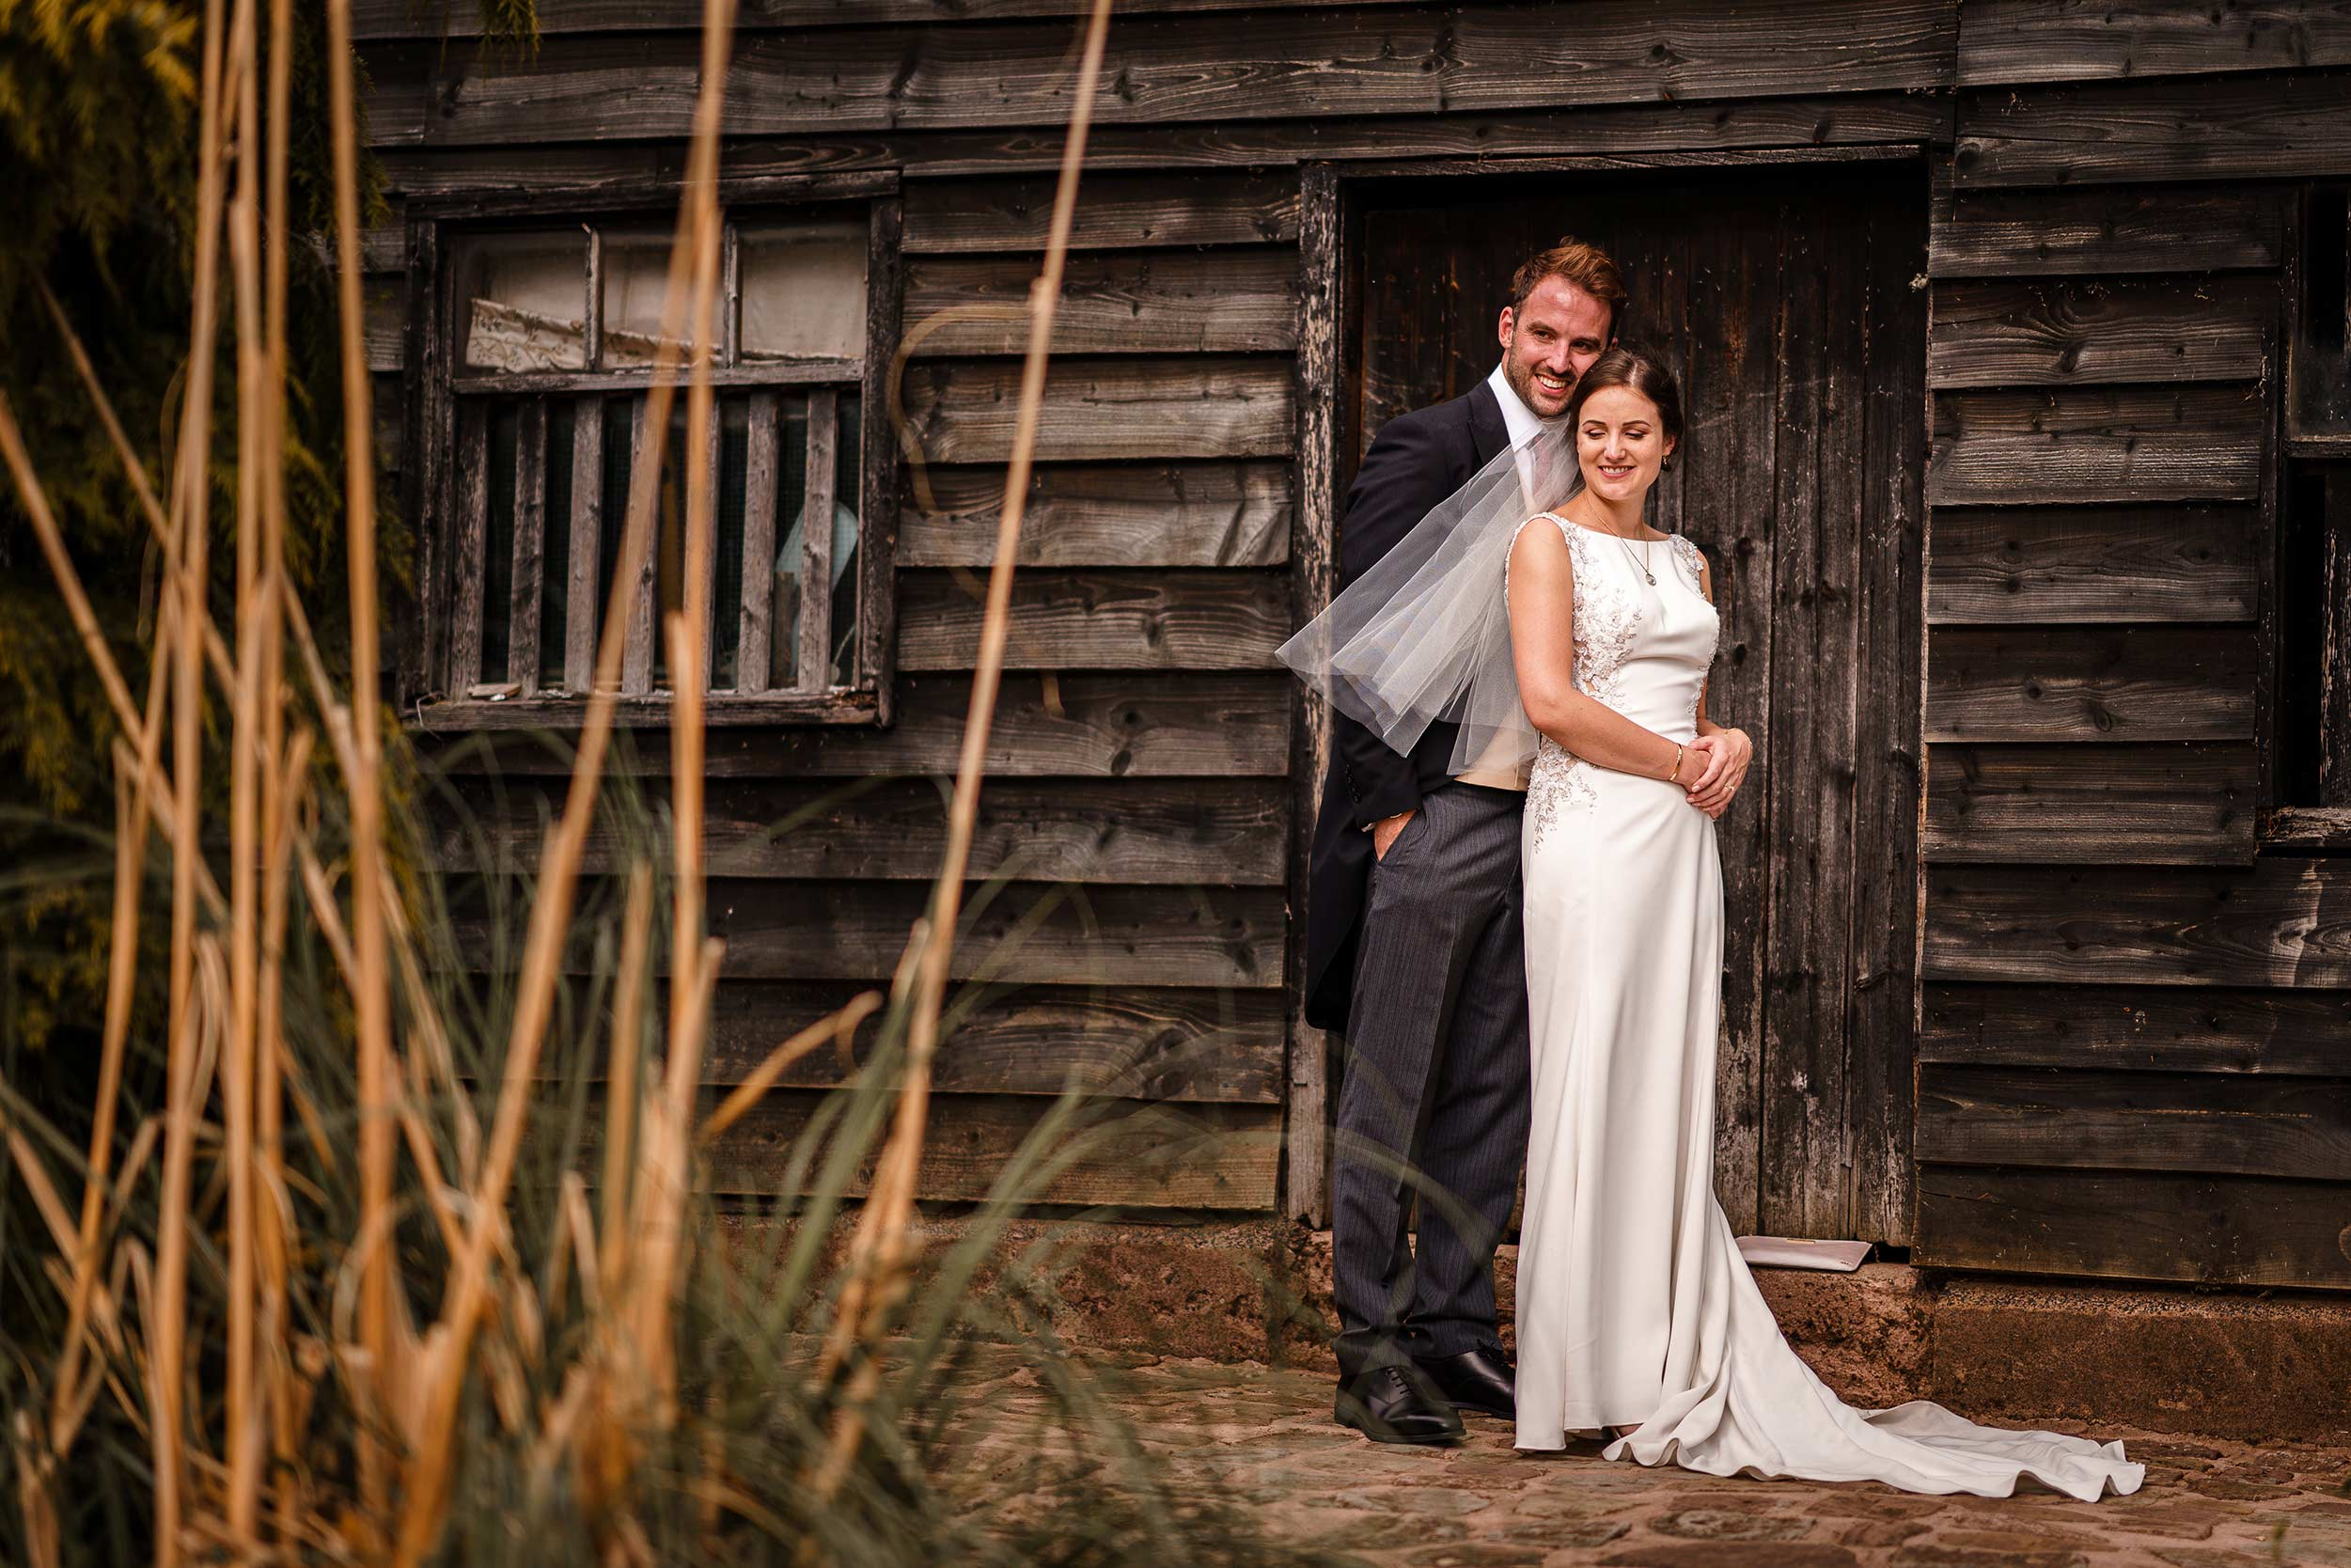 Worcestershire Wedding photographer - Bride and groom portraits - Farm House Wedding